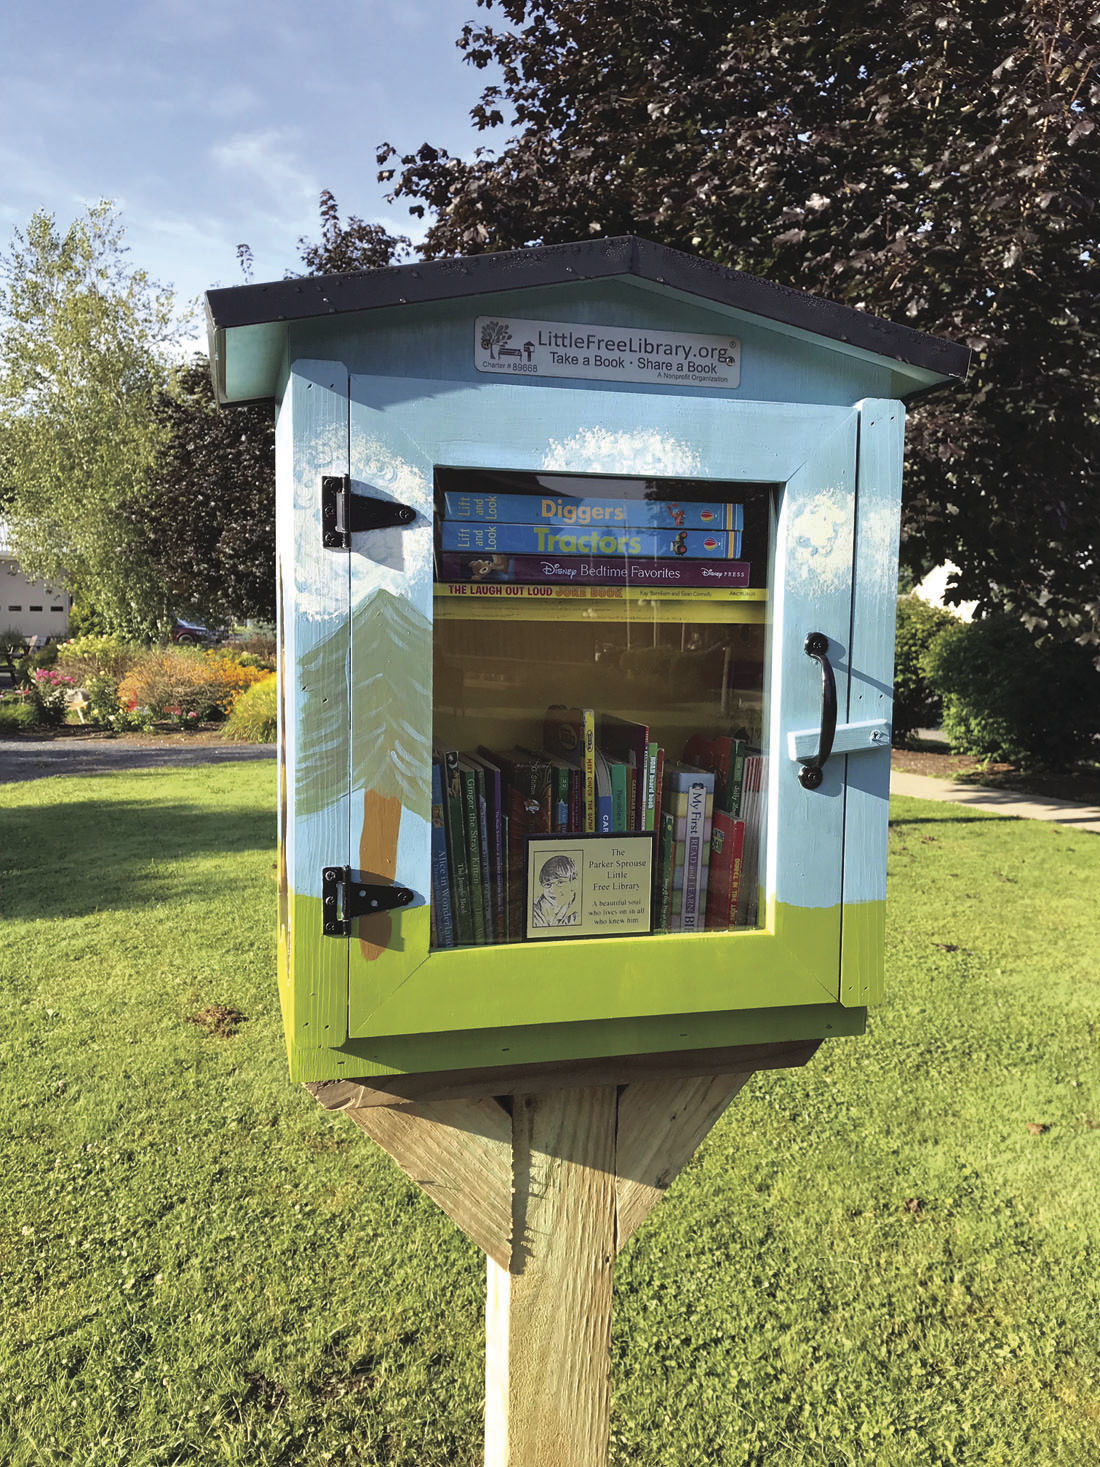 Little Free Library is at arboretum